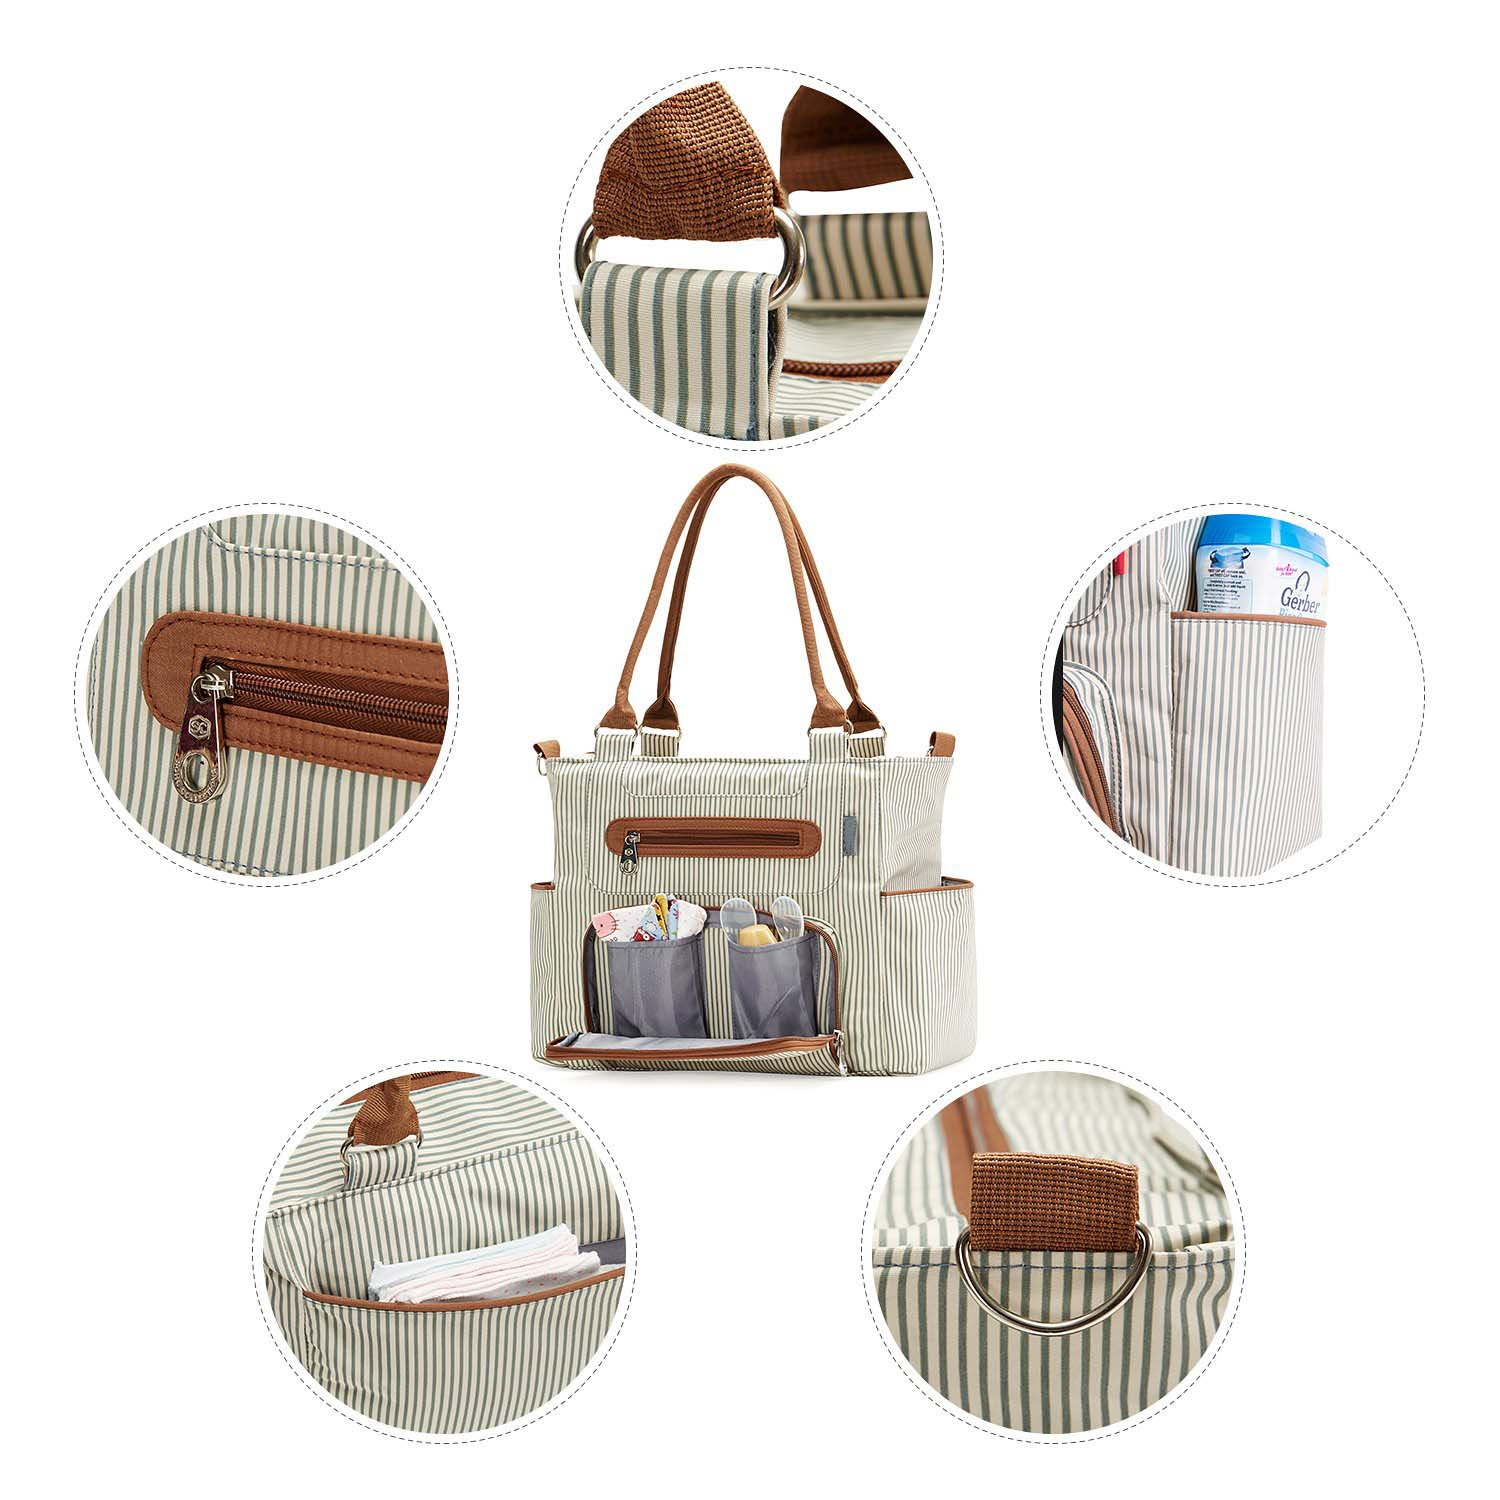 FREE SAMPLE Collection, Grand Central Station 7 pieces Diaper Bag set